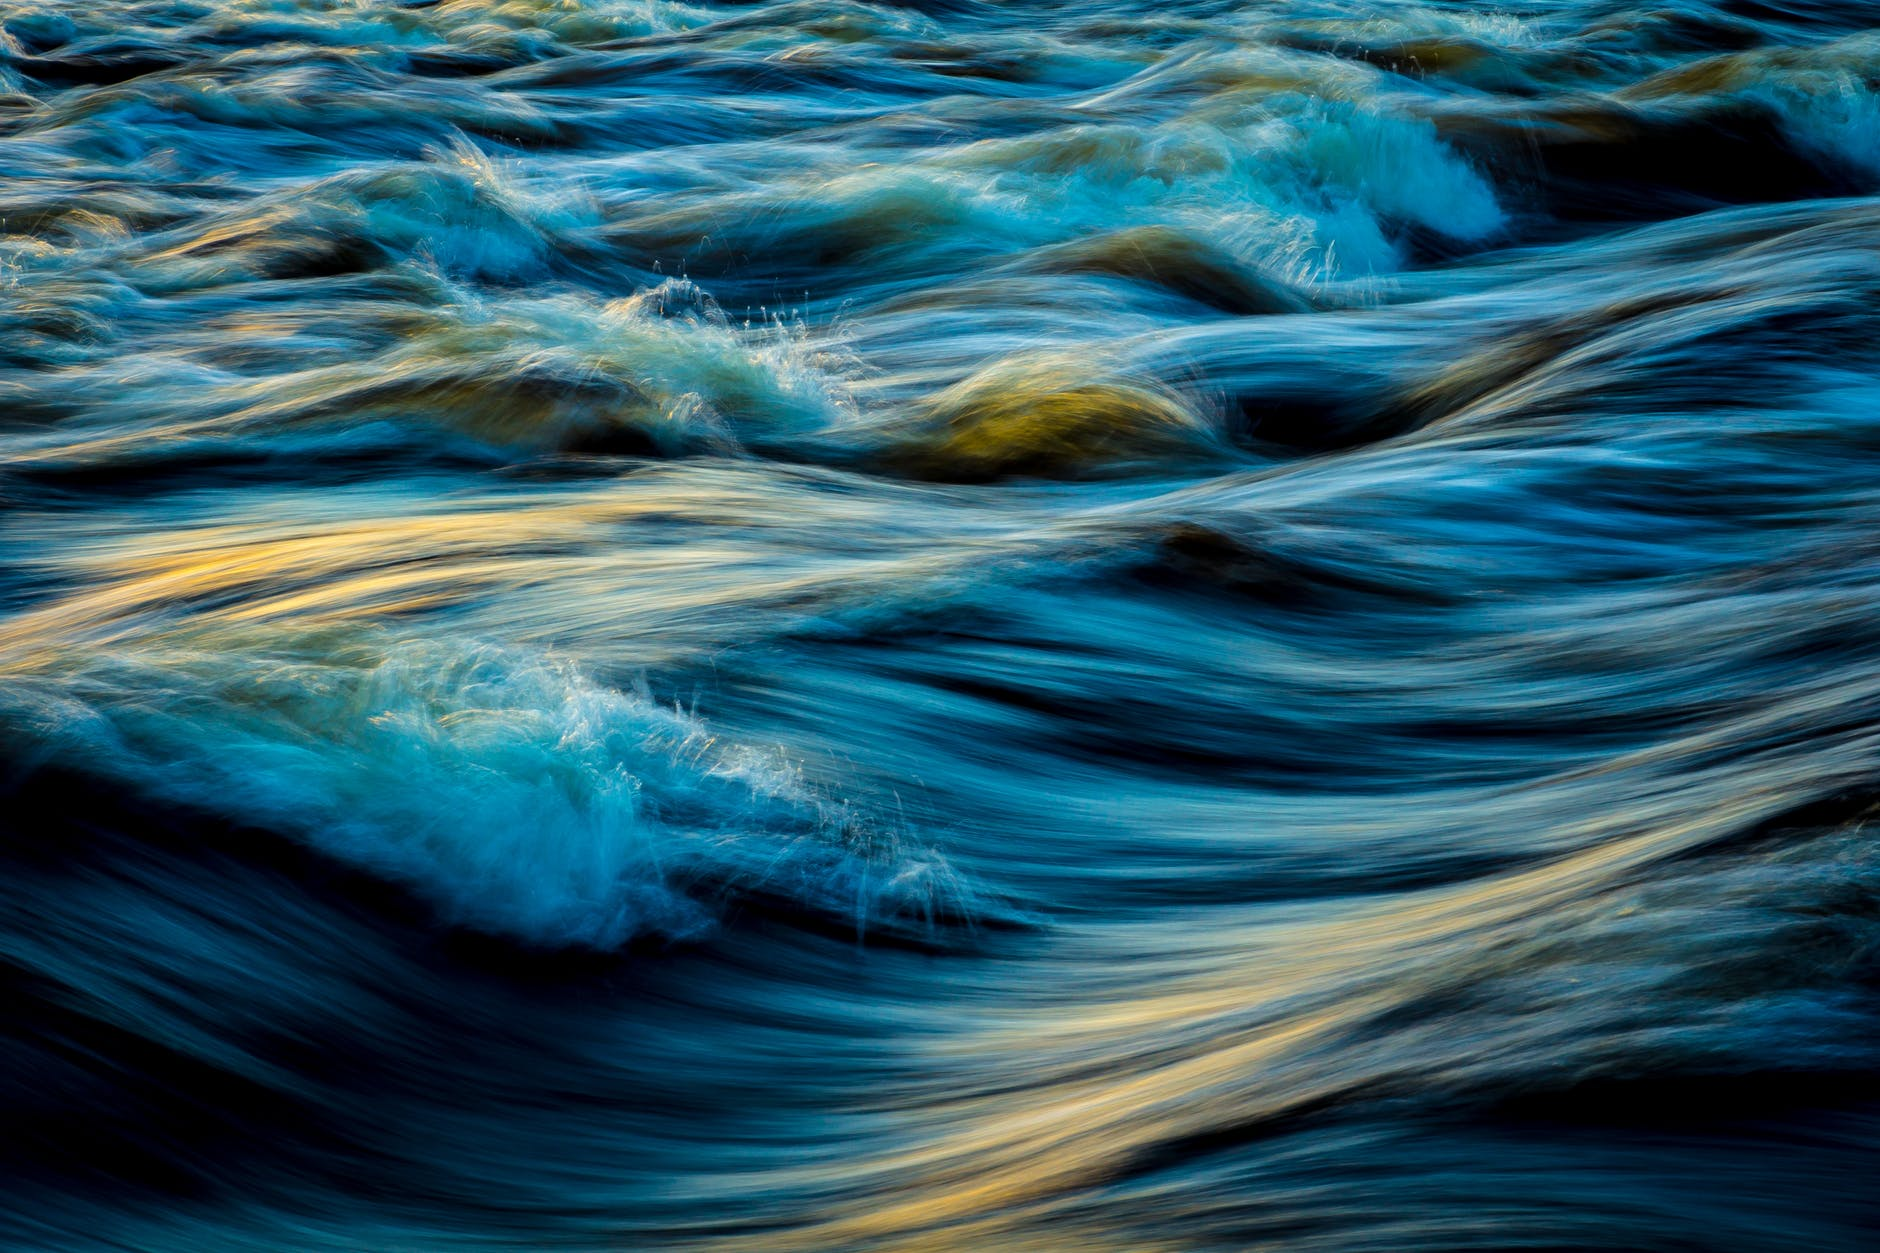 Light reflecting on wavy water.